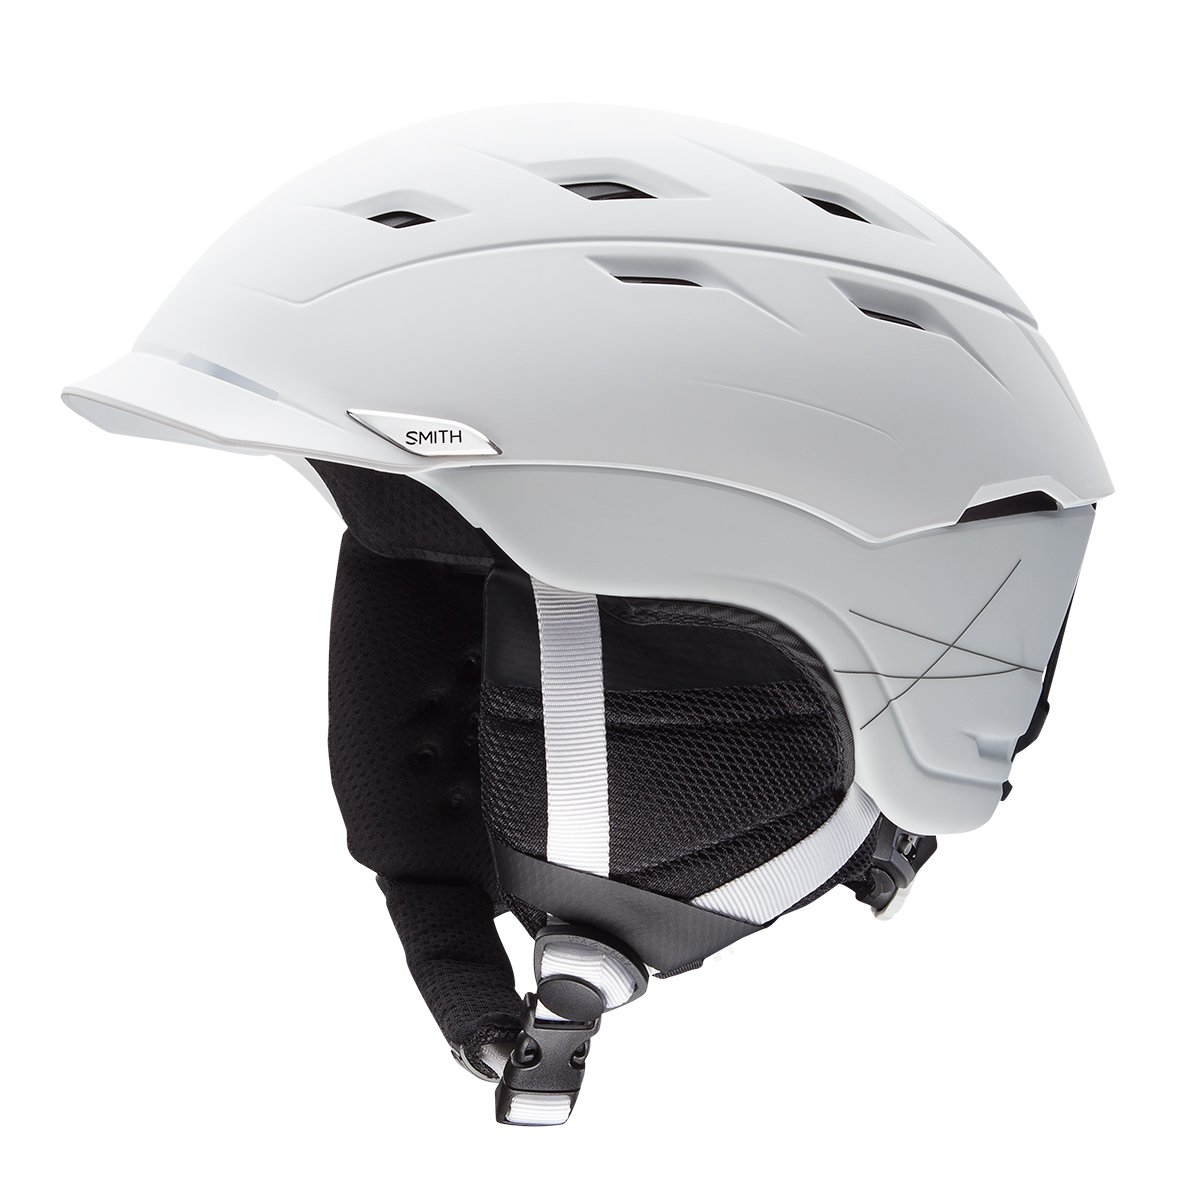 Smith Optics Unisex Adult Variance Snow Sports Helmet - Matte White Small (51-55CM)